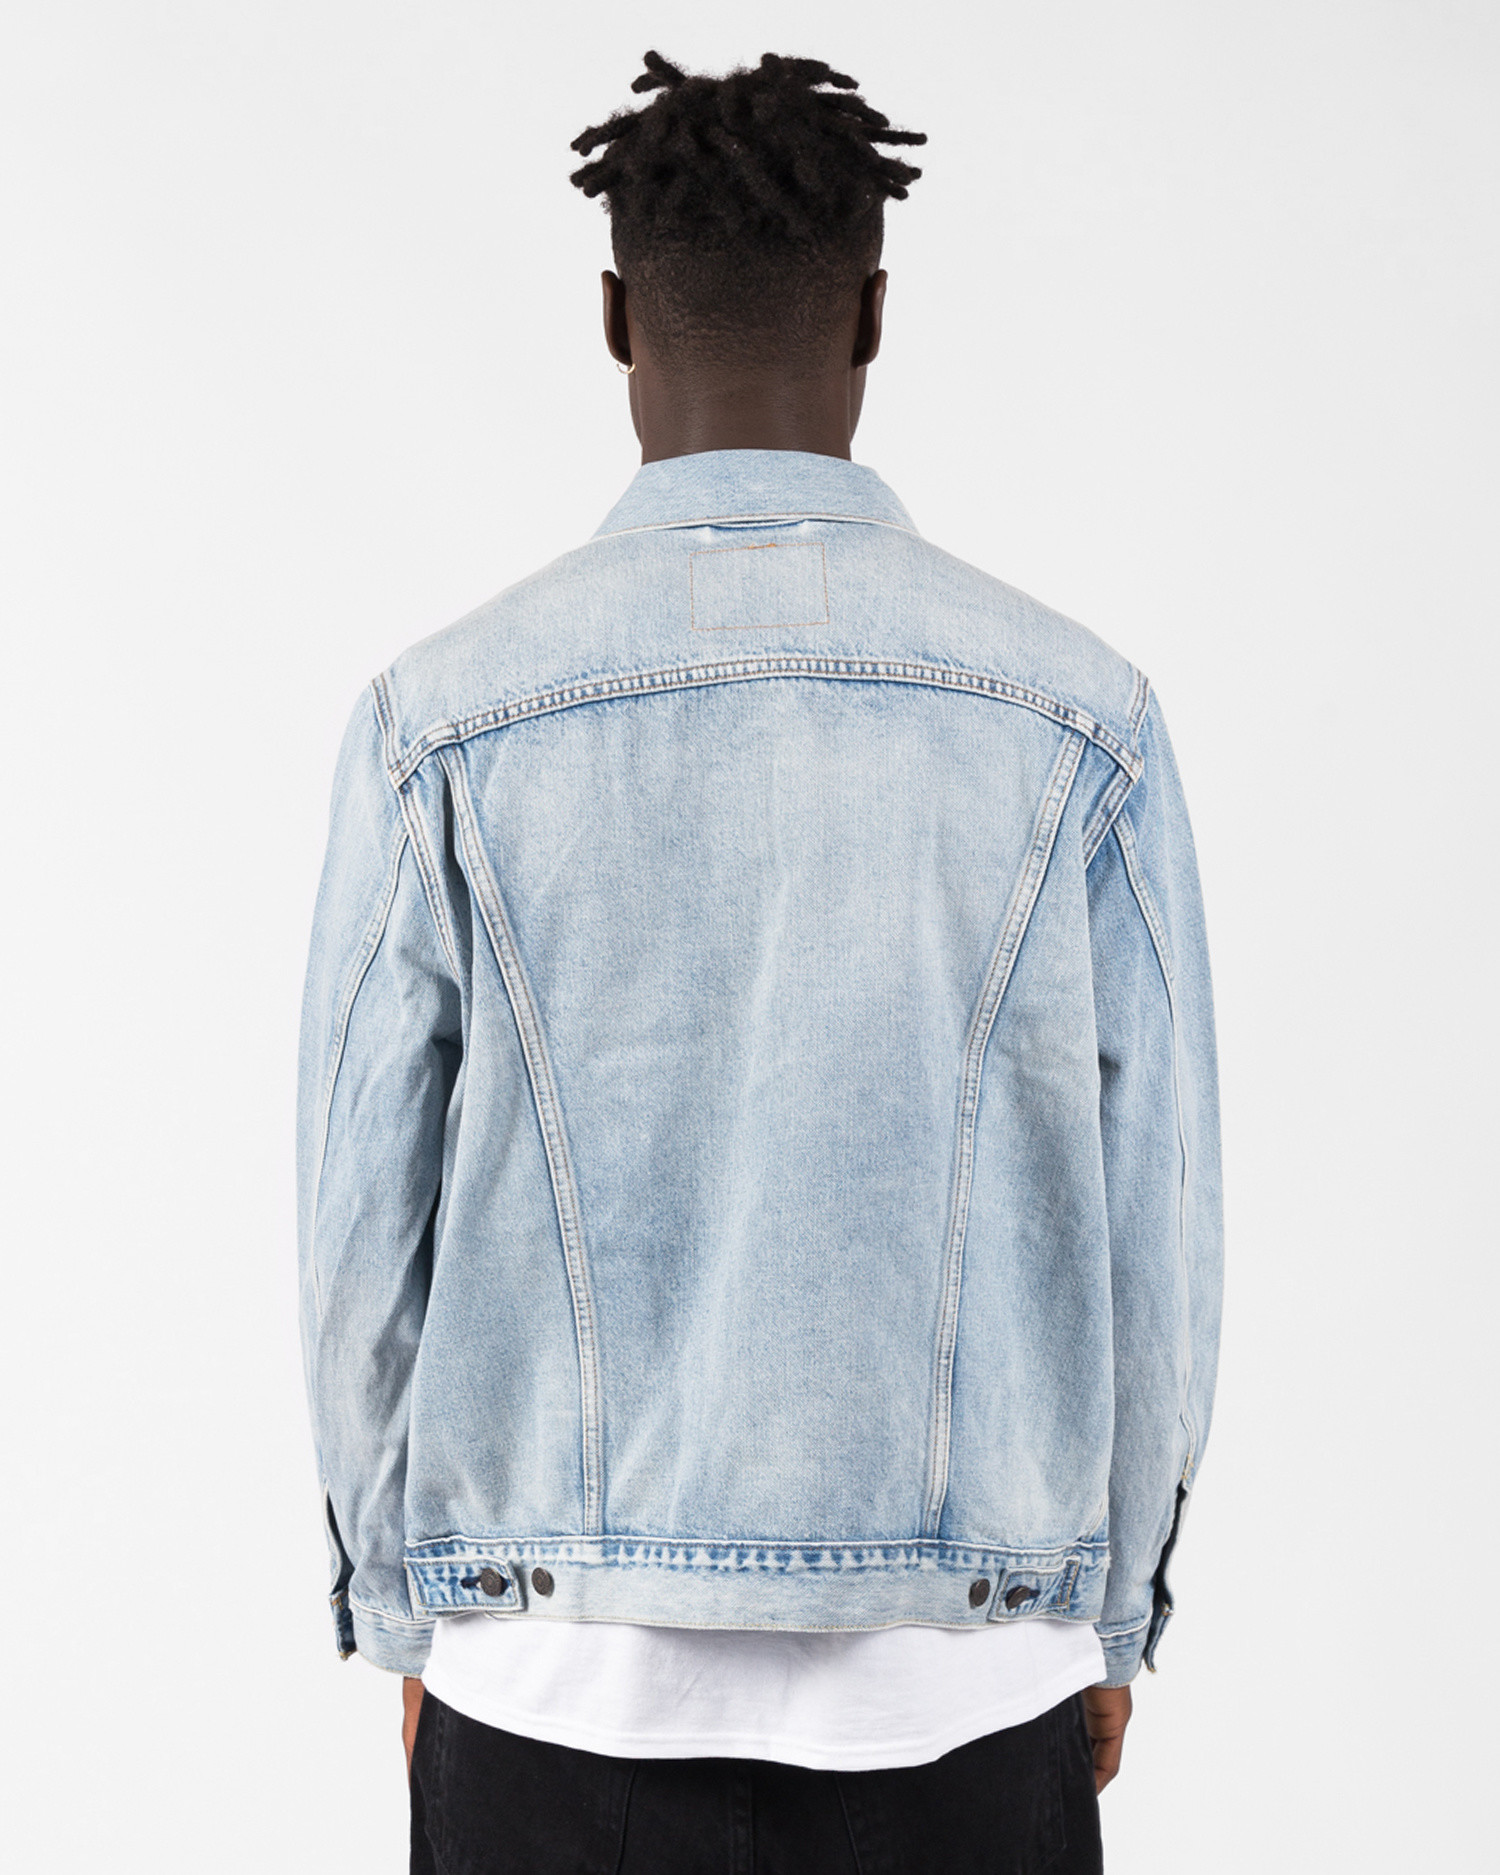 Levi's Vintage Fit Trucker V Super Lite Trucker